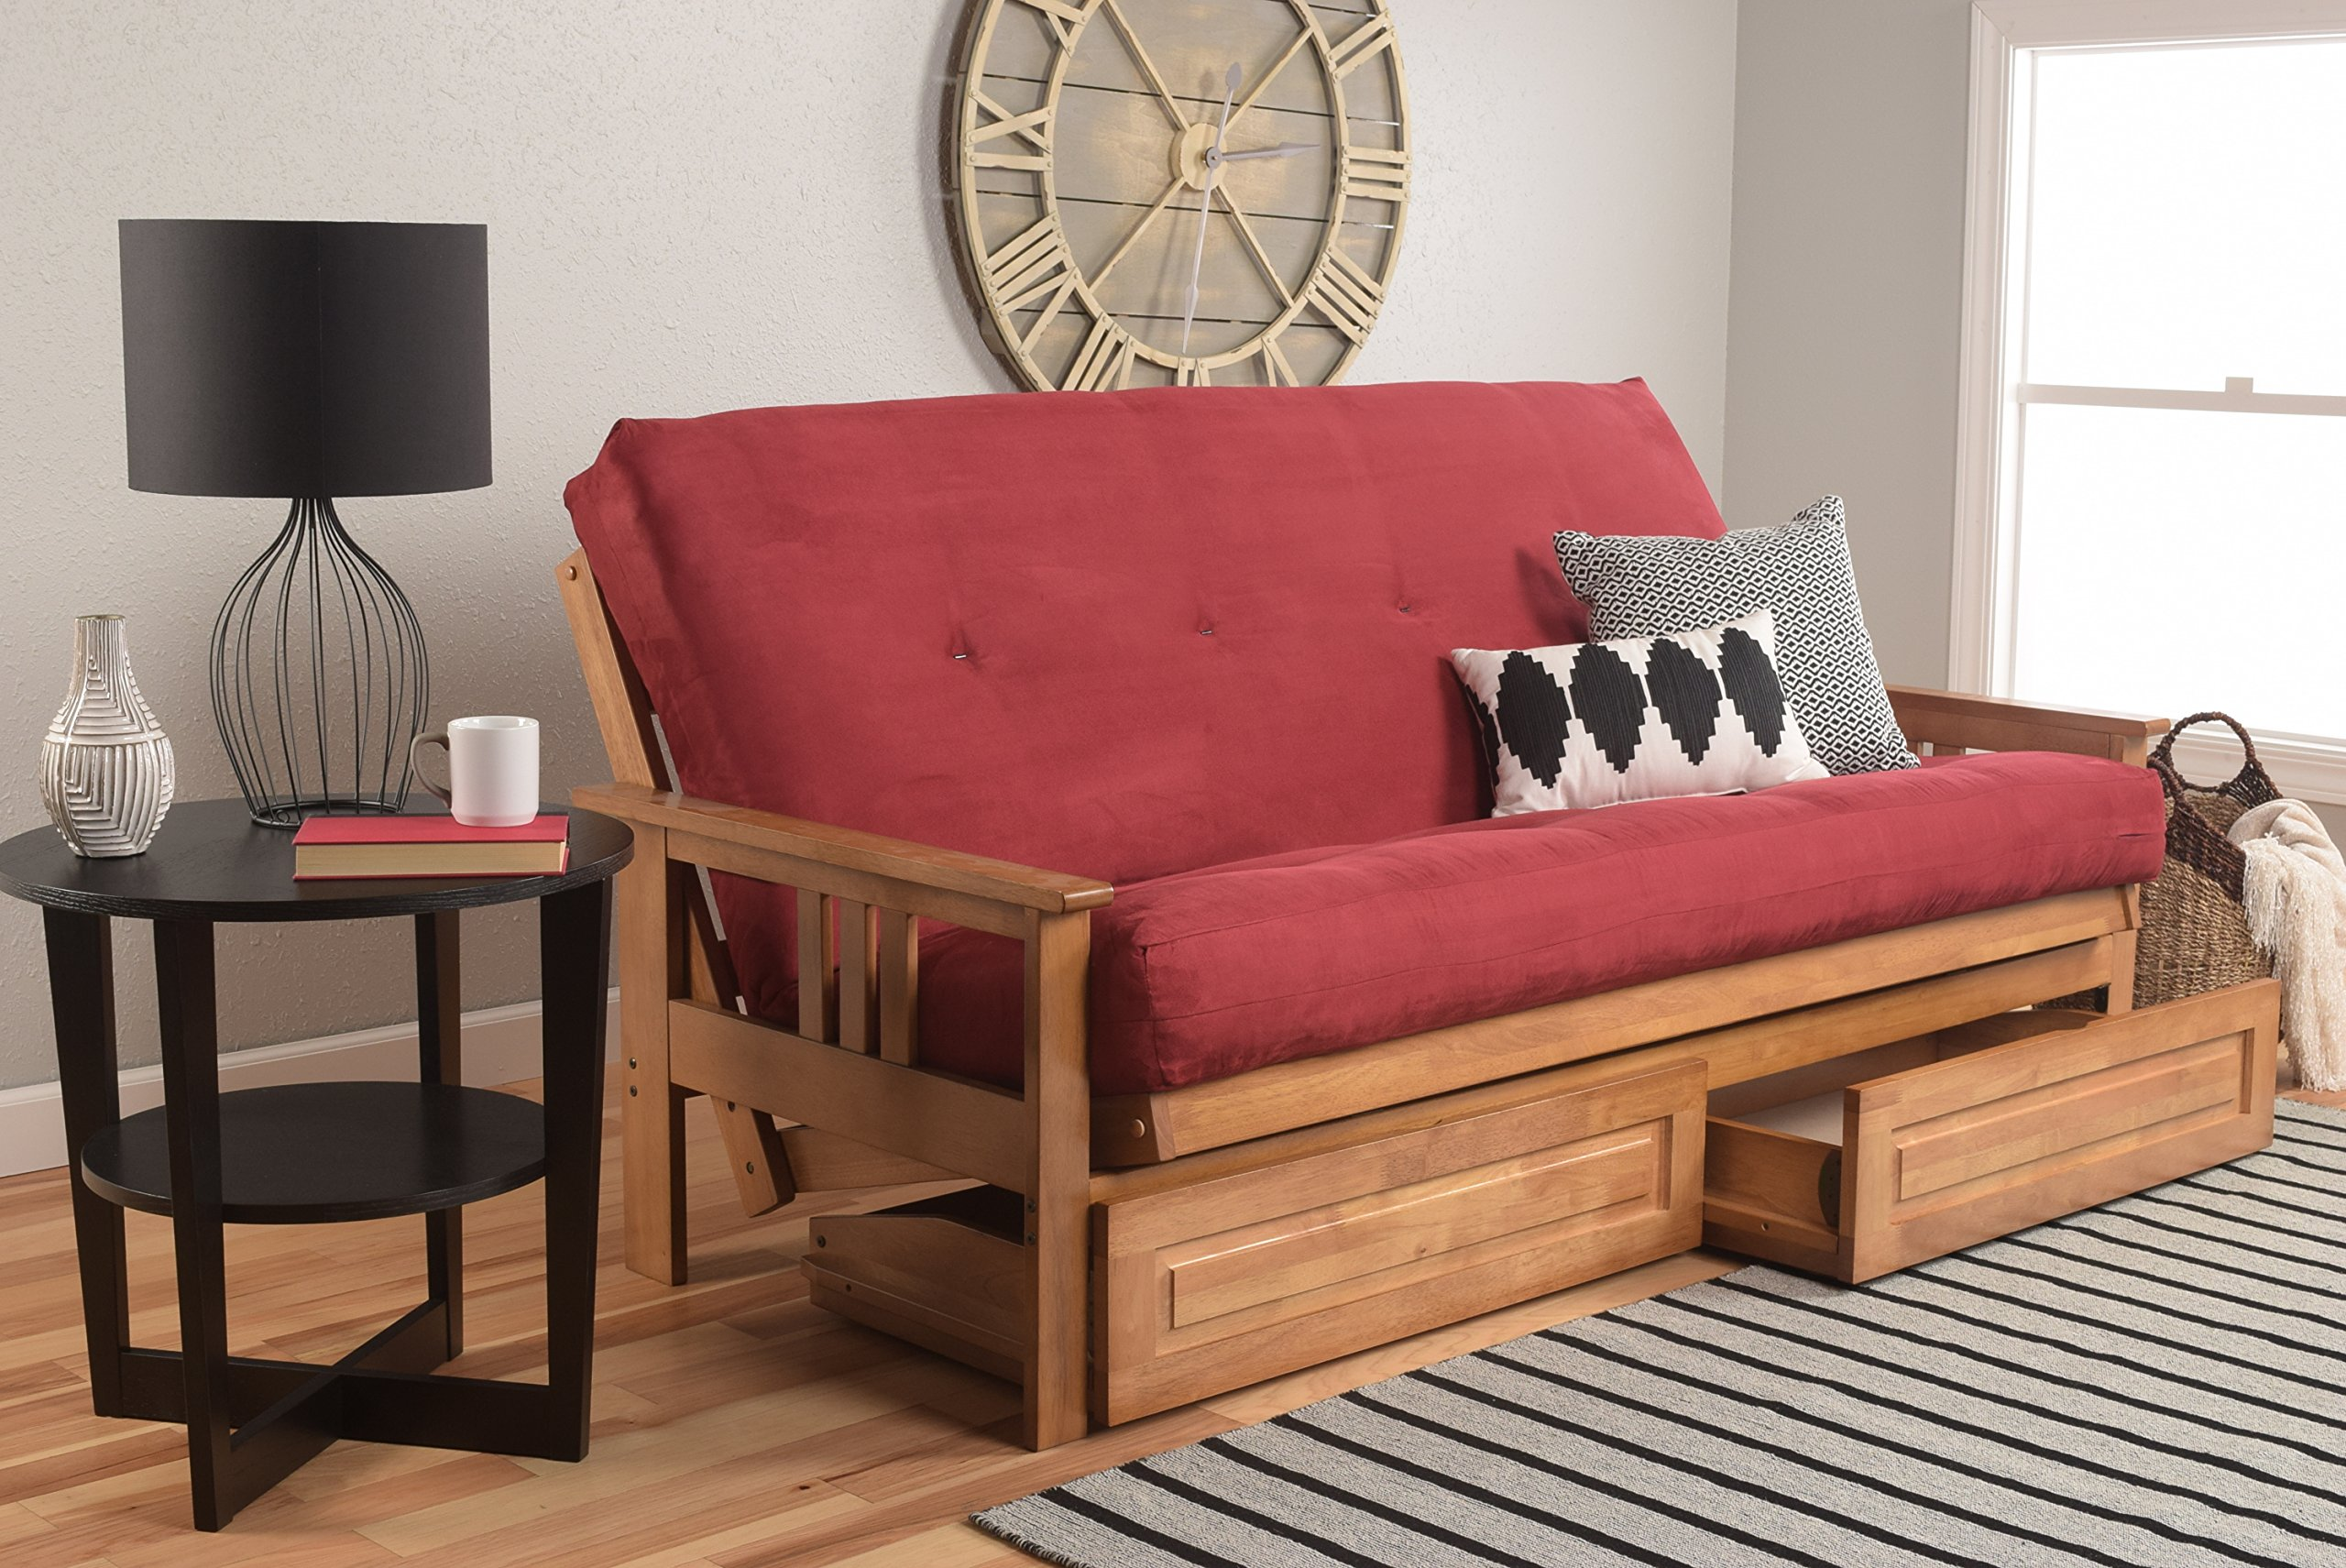 Kodiak Furniture Monterey Futon Set with Butternut Finish and Storage Drawers, Full, Suede Red by Kodiak Furniture